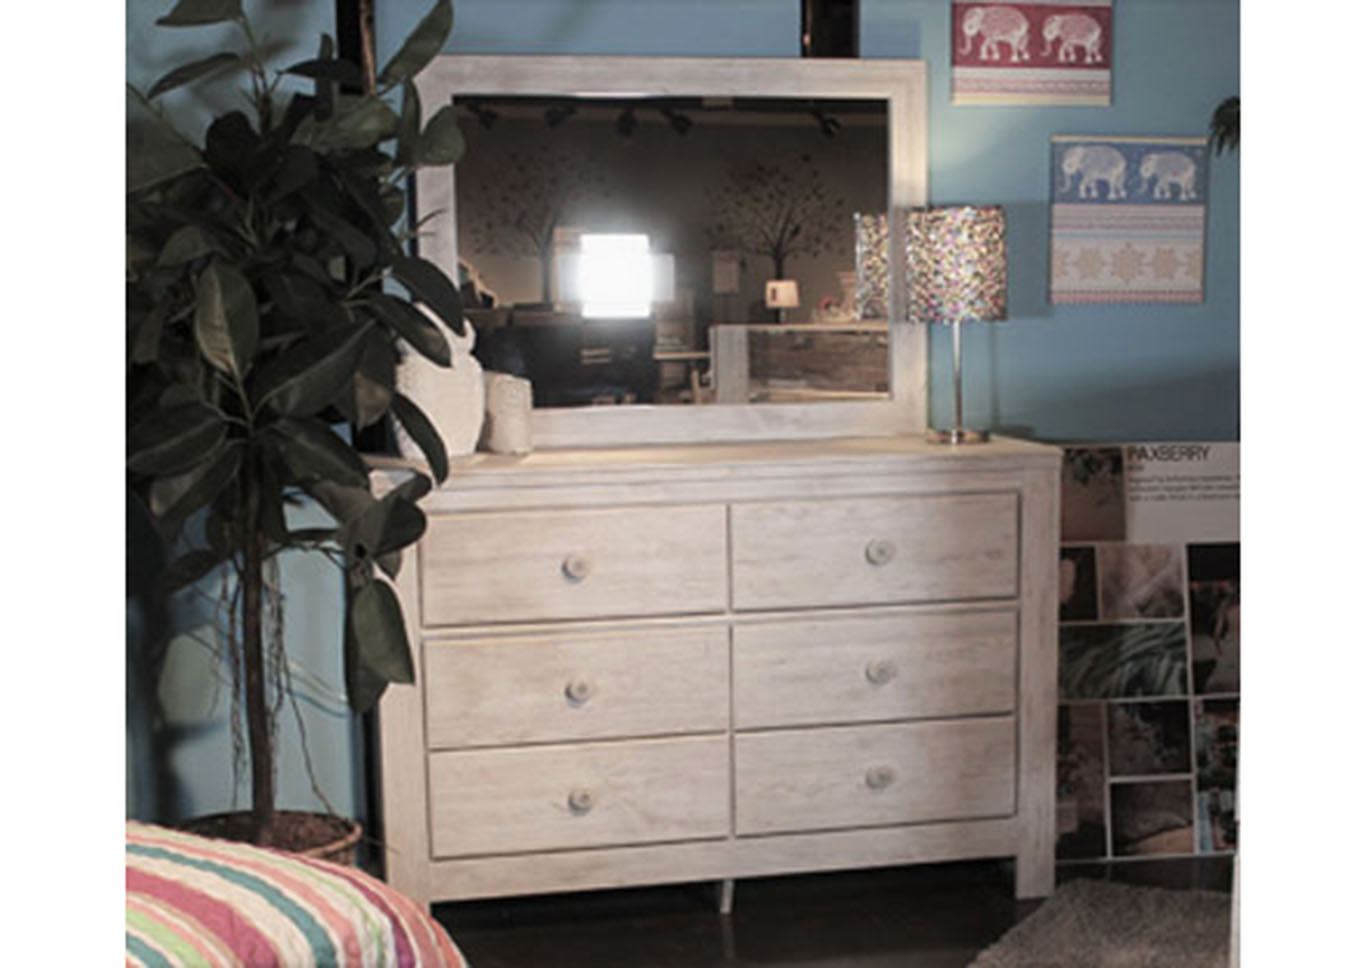 Paxberry Dresser,Signature Design By Ashley